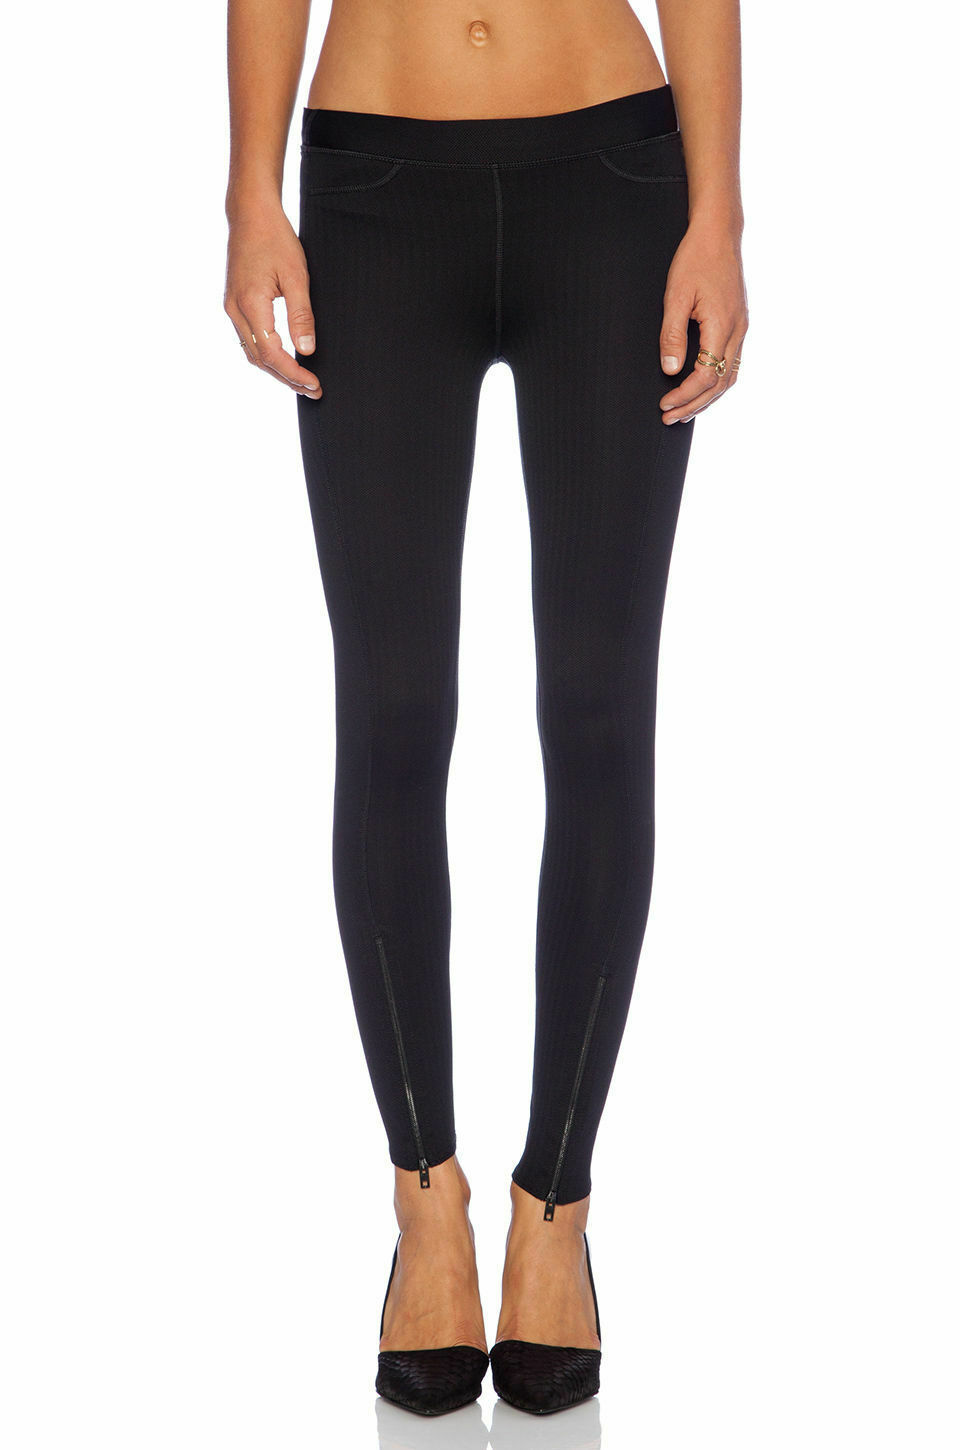 Rag & Bone Women's Lawson Premium Leggings Pants, Black Chevron